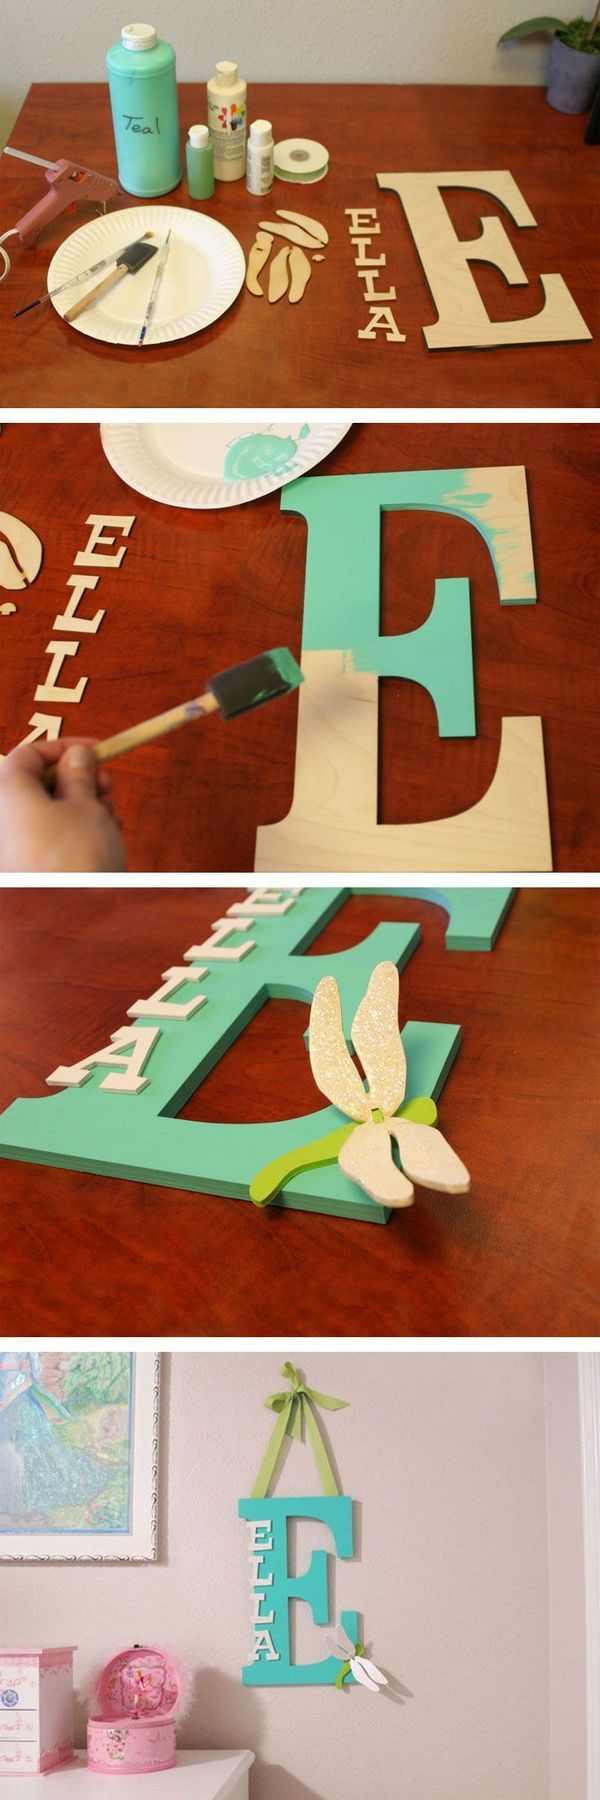 25 unique decorate wooden letters ideas on pinterest baby room diy letter ideas tutorials amipublicfo Images